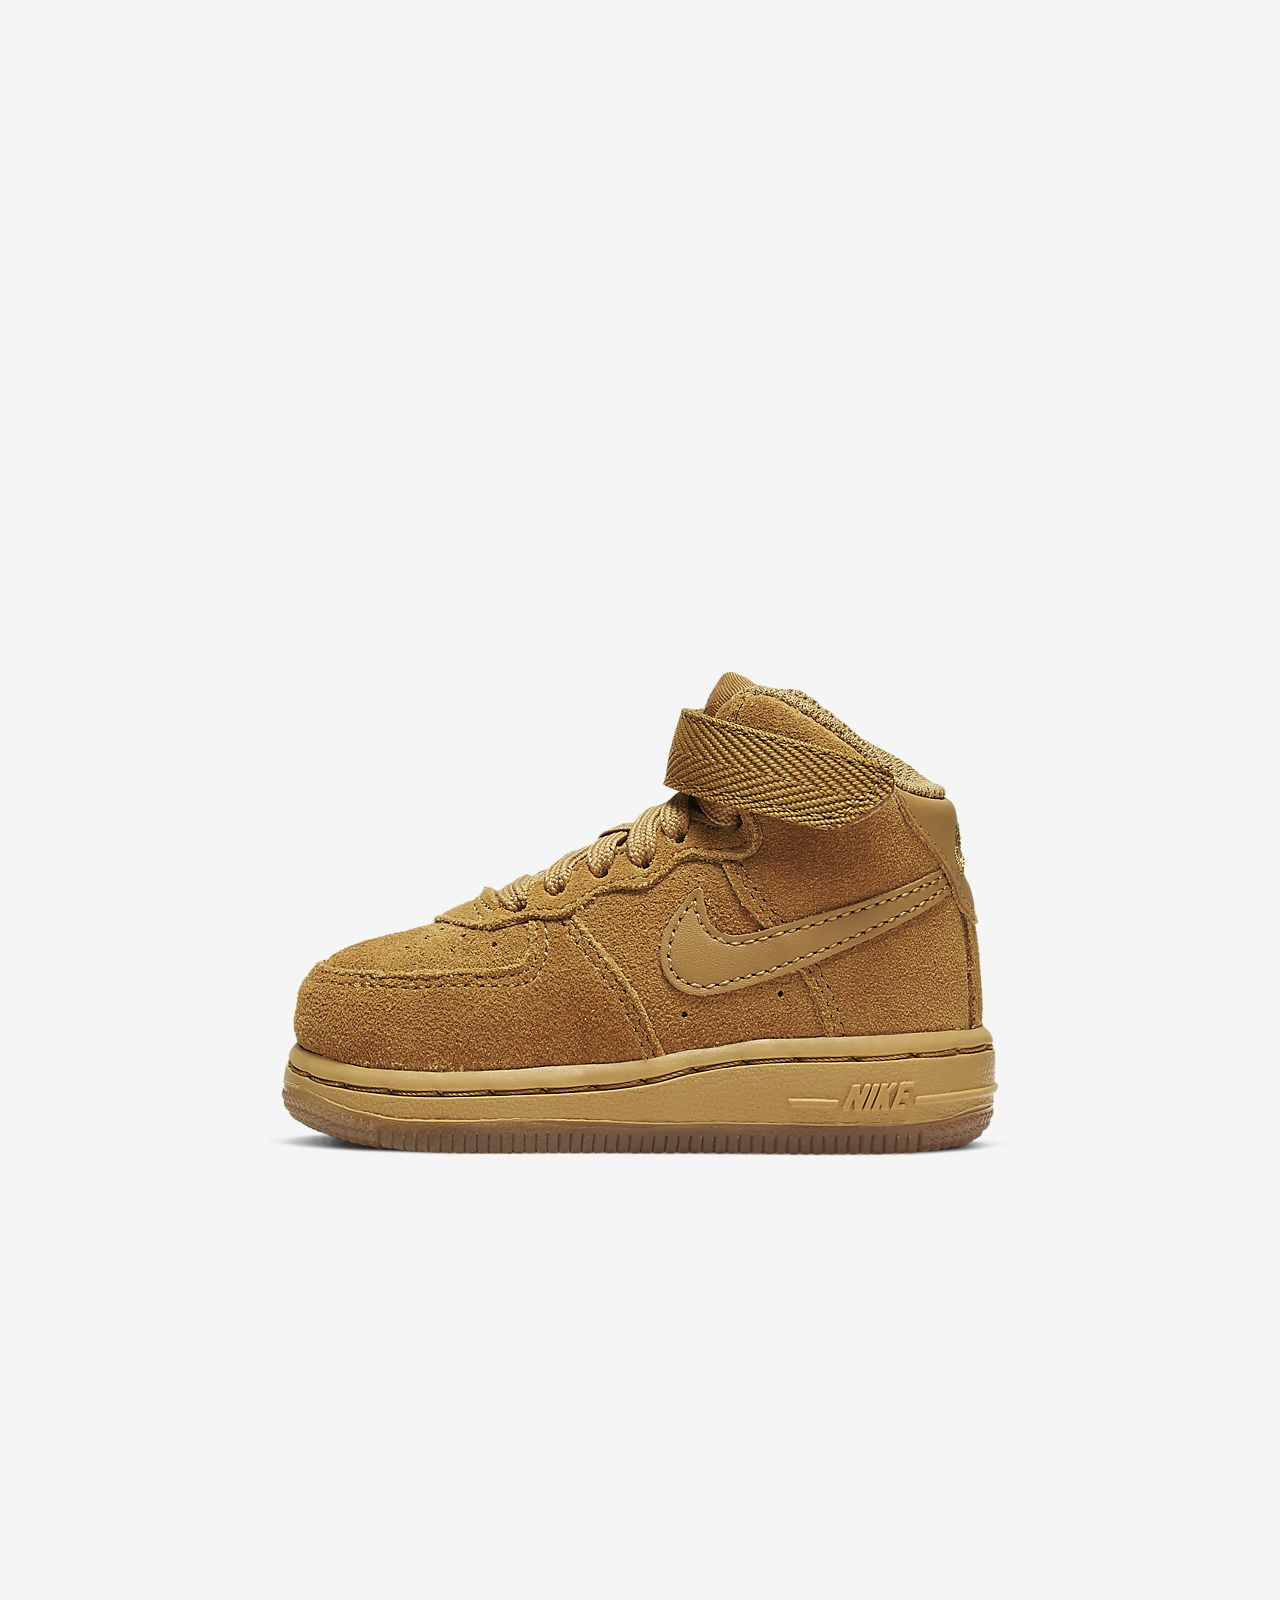 Nike Force 1 Mid LV8 3 Baby/Toddler Shoe